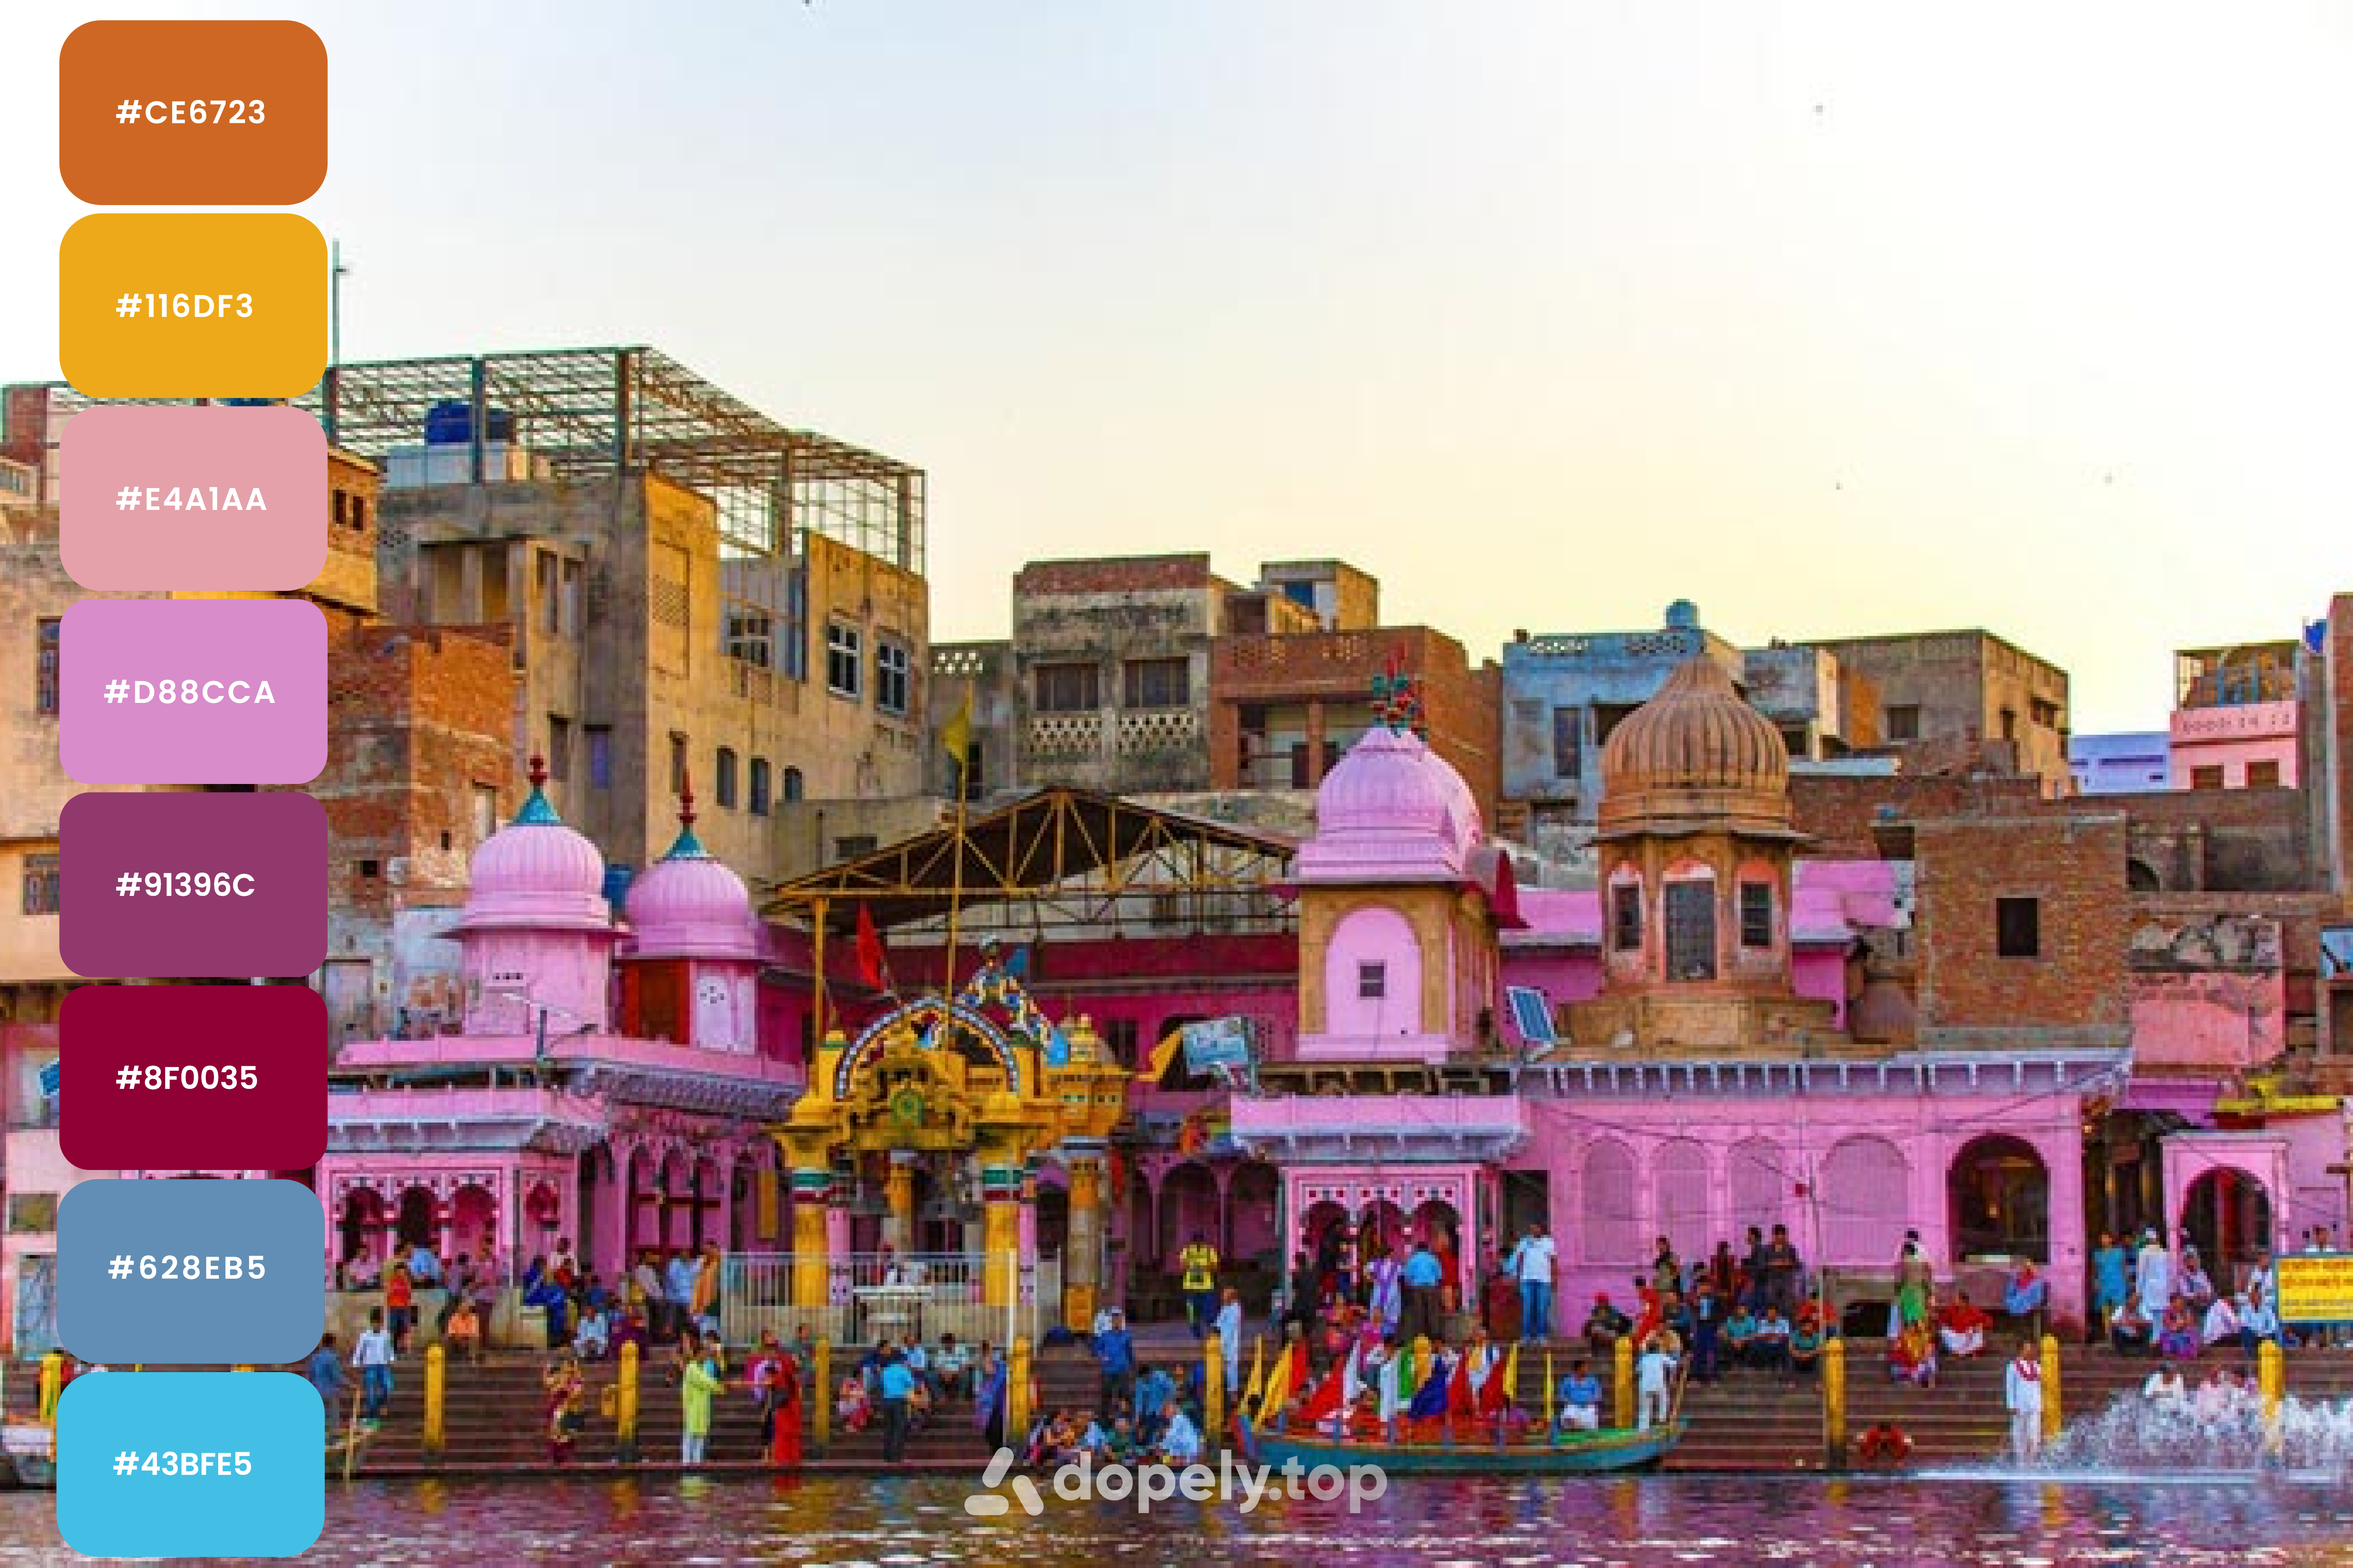 Vrindavan one of the most colorful cities in India, color palette by Dopely